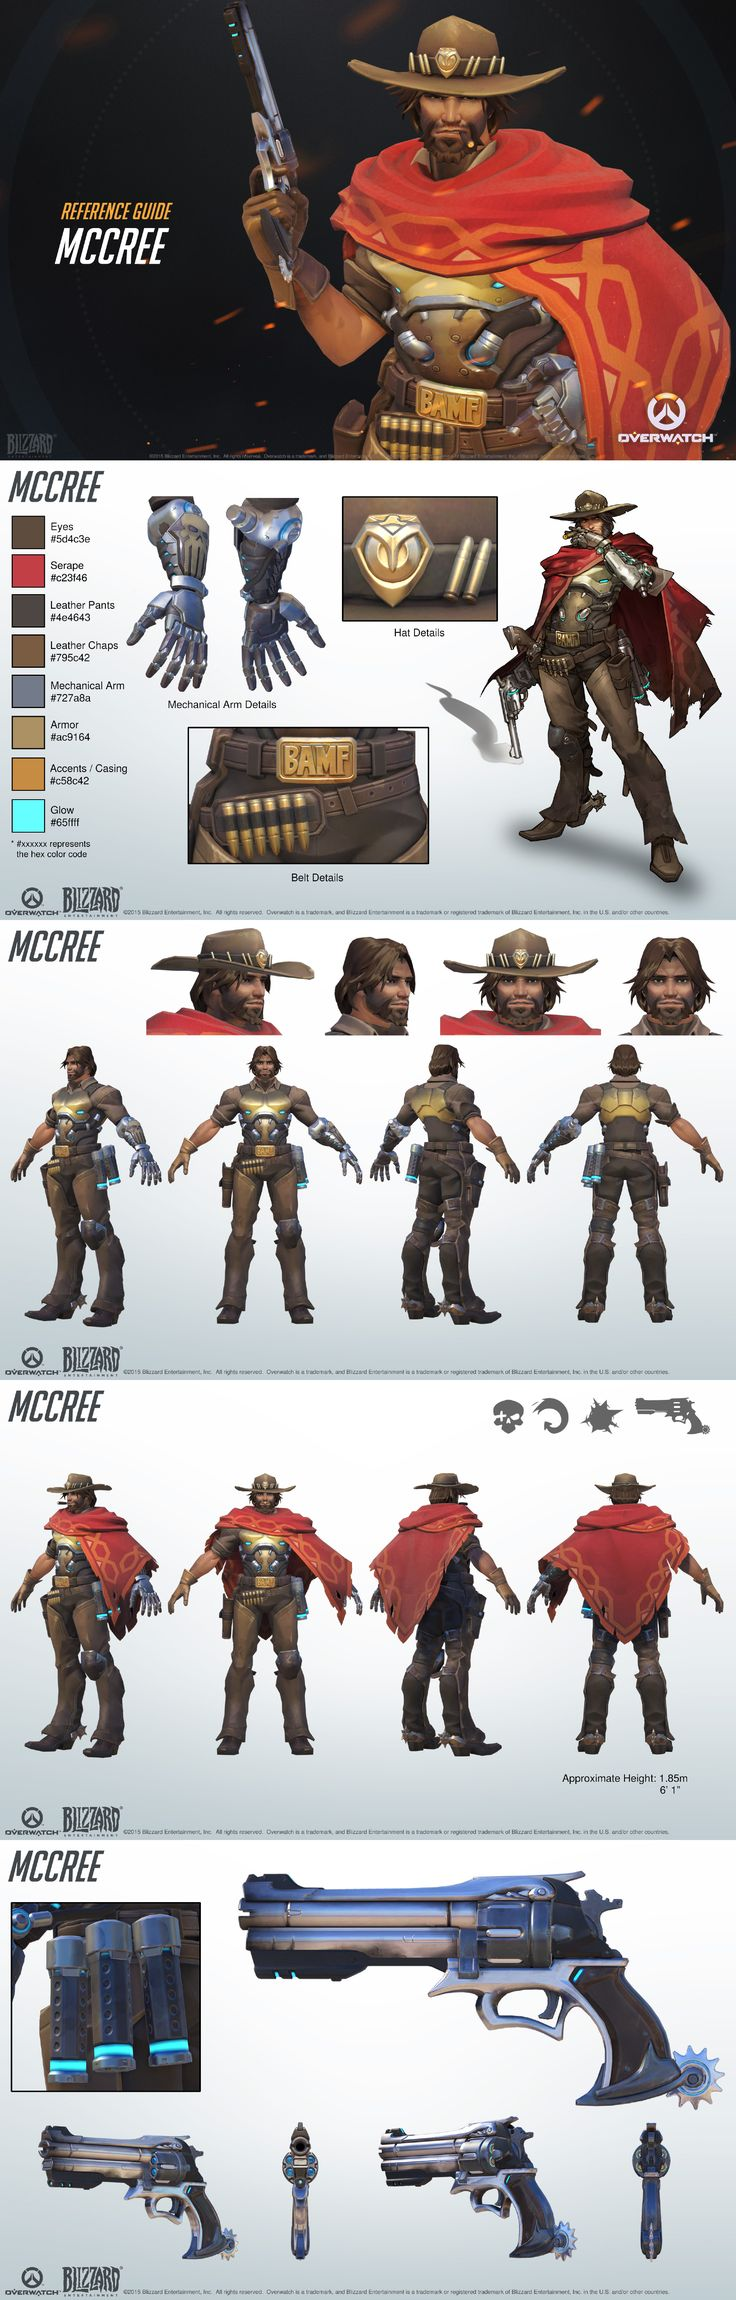 Character Design Handbook : Overwatch mccree reference guide character sheet